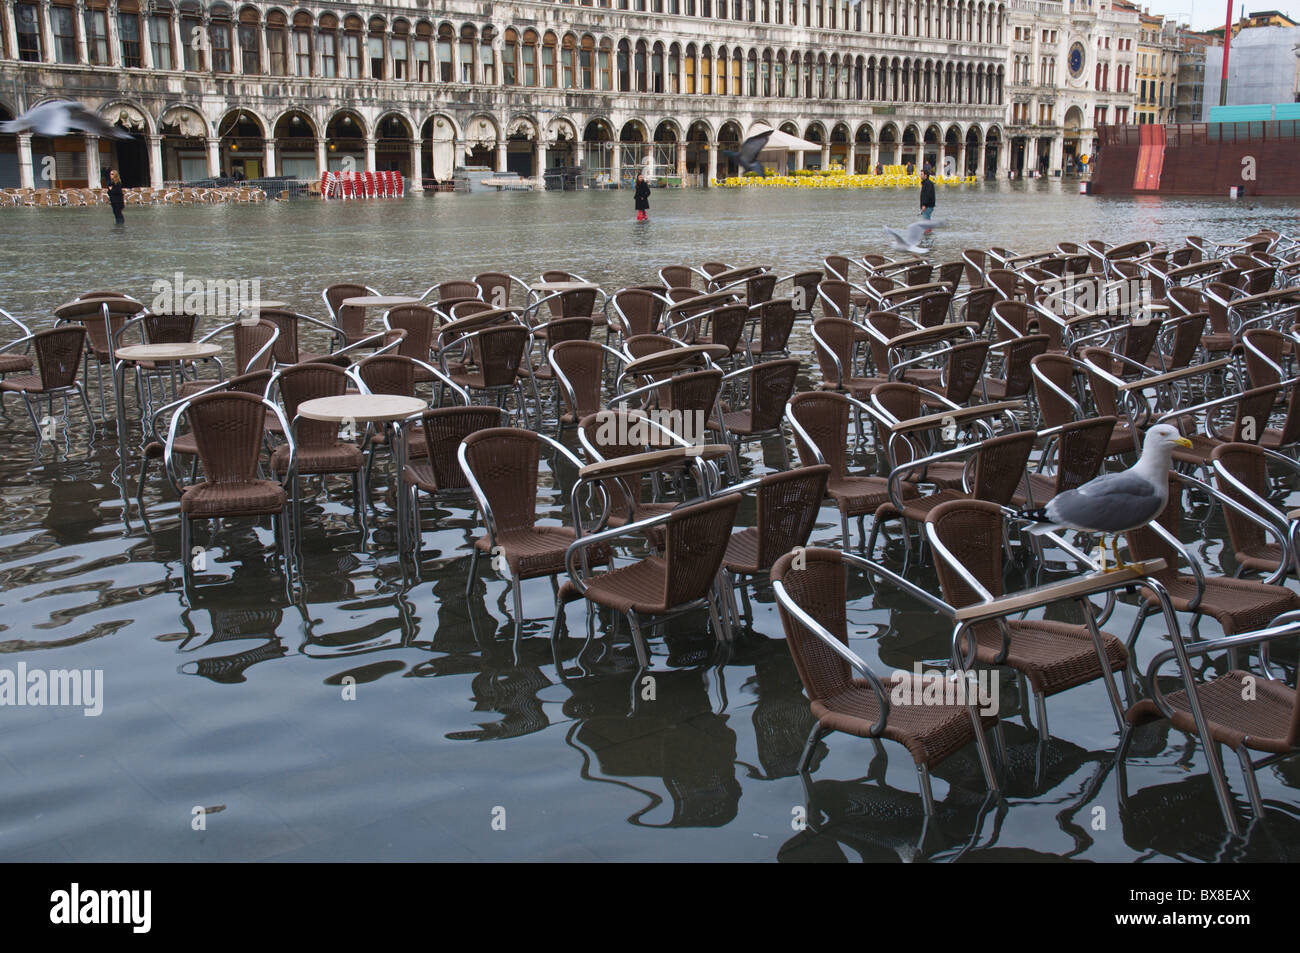 Tide tables stock photos tide tables stock images alamy cafe chairs and tables under water piazza san marco during high tide floods san marco district nvjuhfo Choice Image